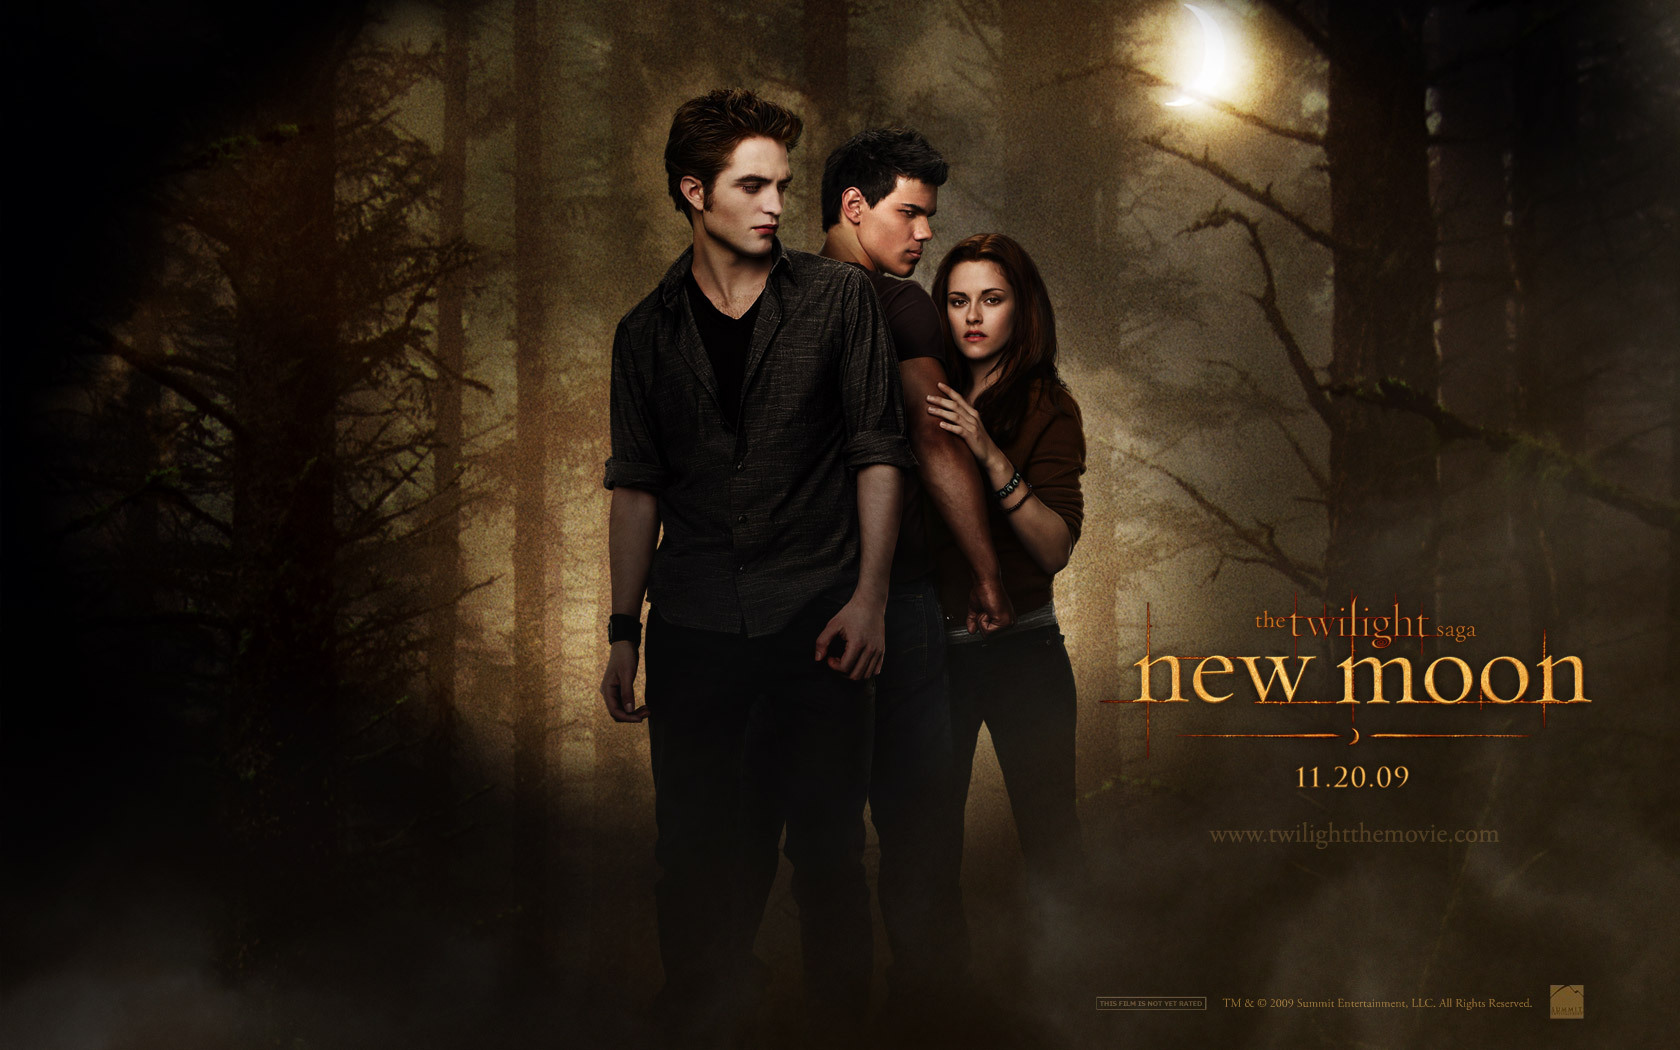 New Moon Edward Cullen Photo 7245056 Fanpop